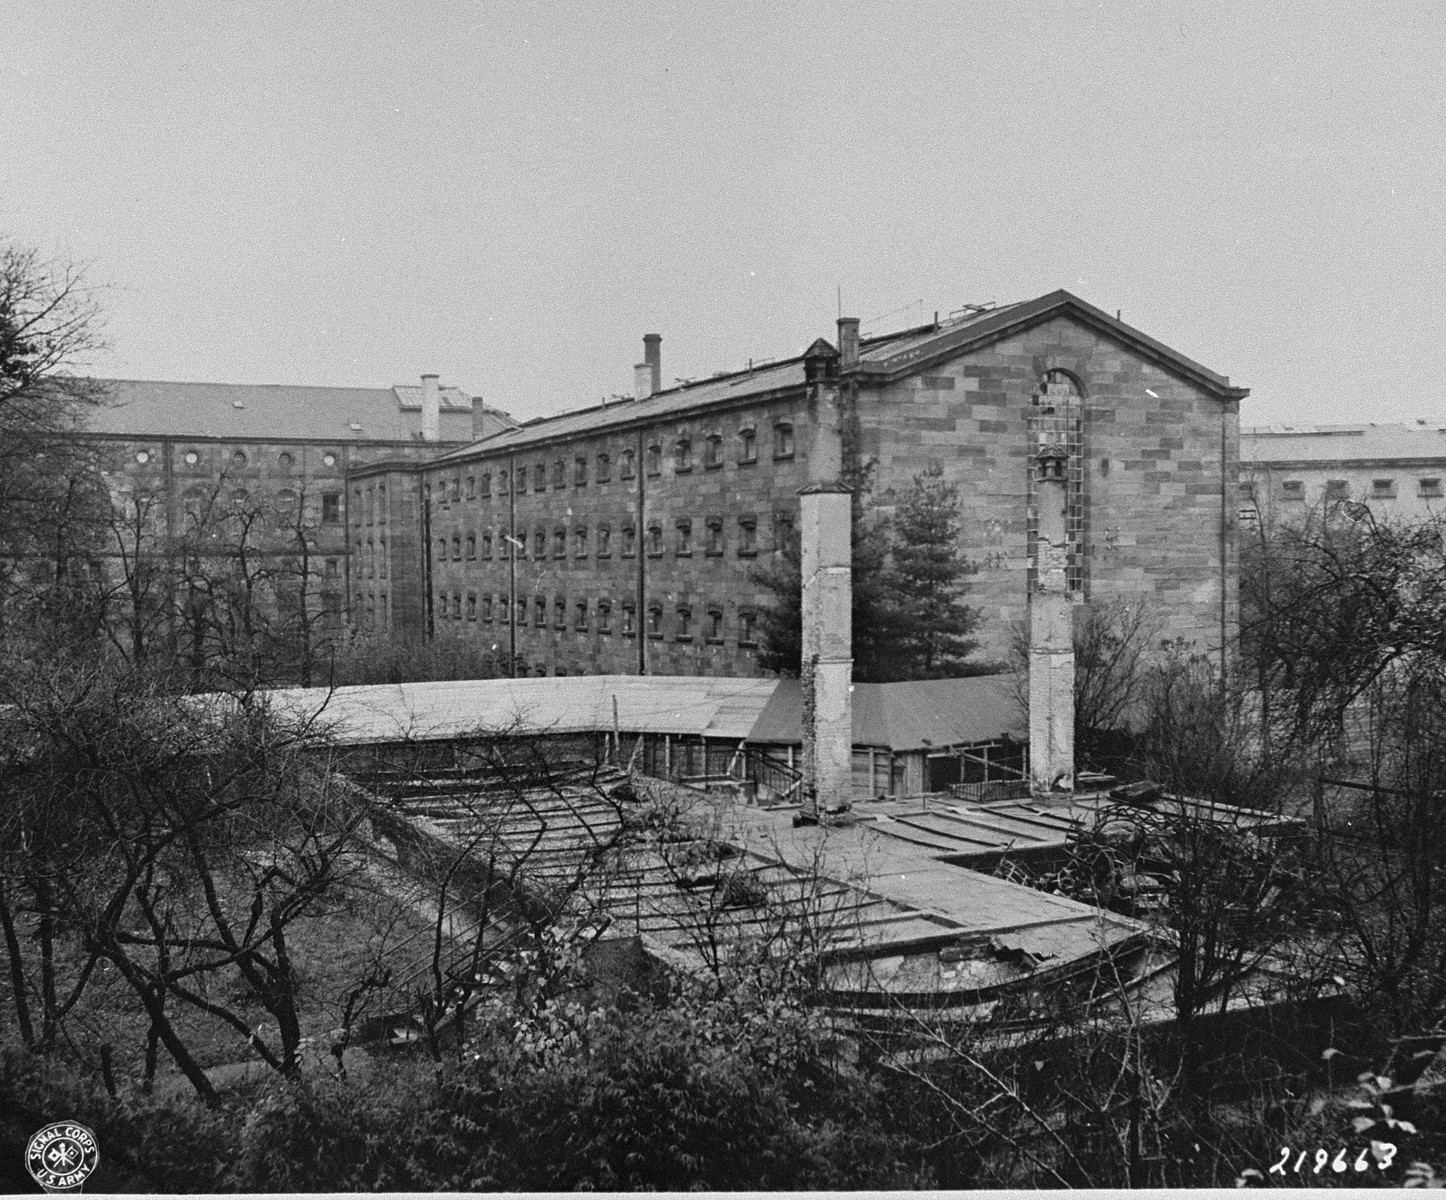 View of the Nuremberg prison, where the defendants were confined during the International Military Tribunal trial of war criminals.